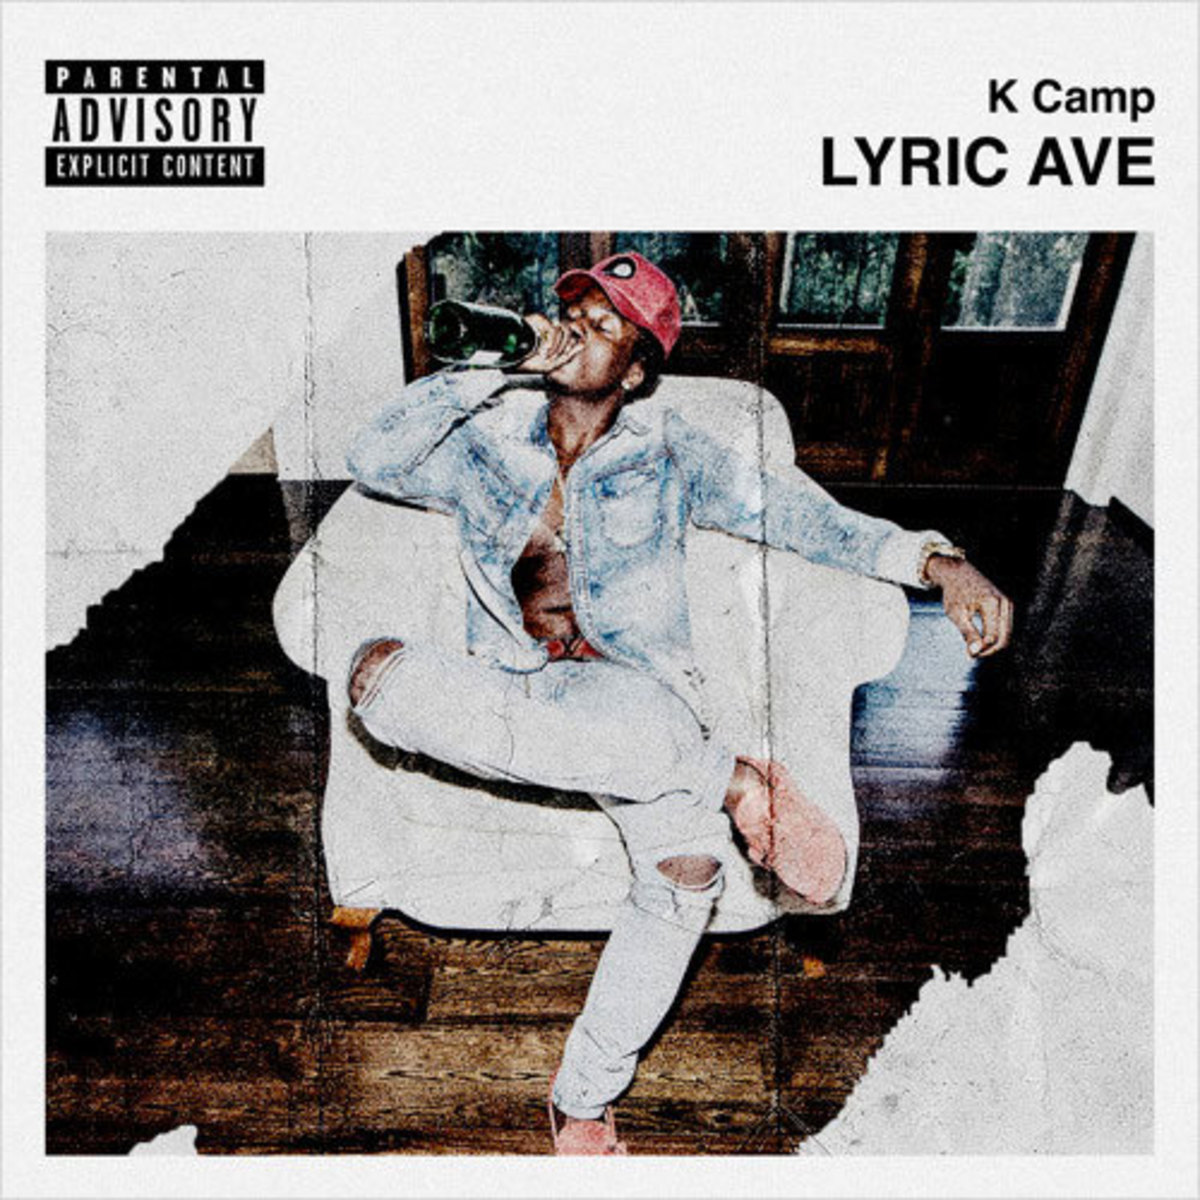 k-camp-lyric-ave.jpg